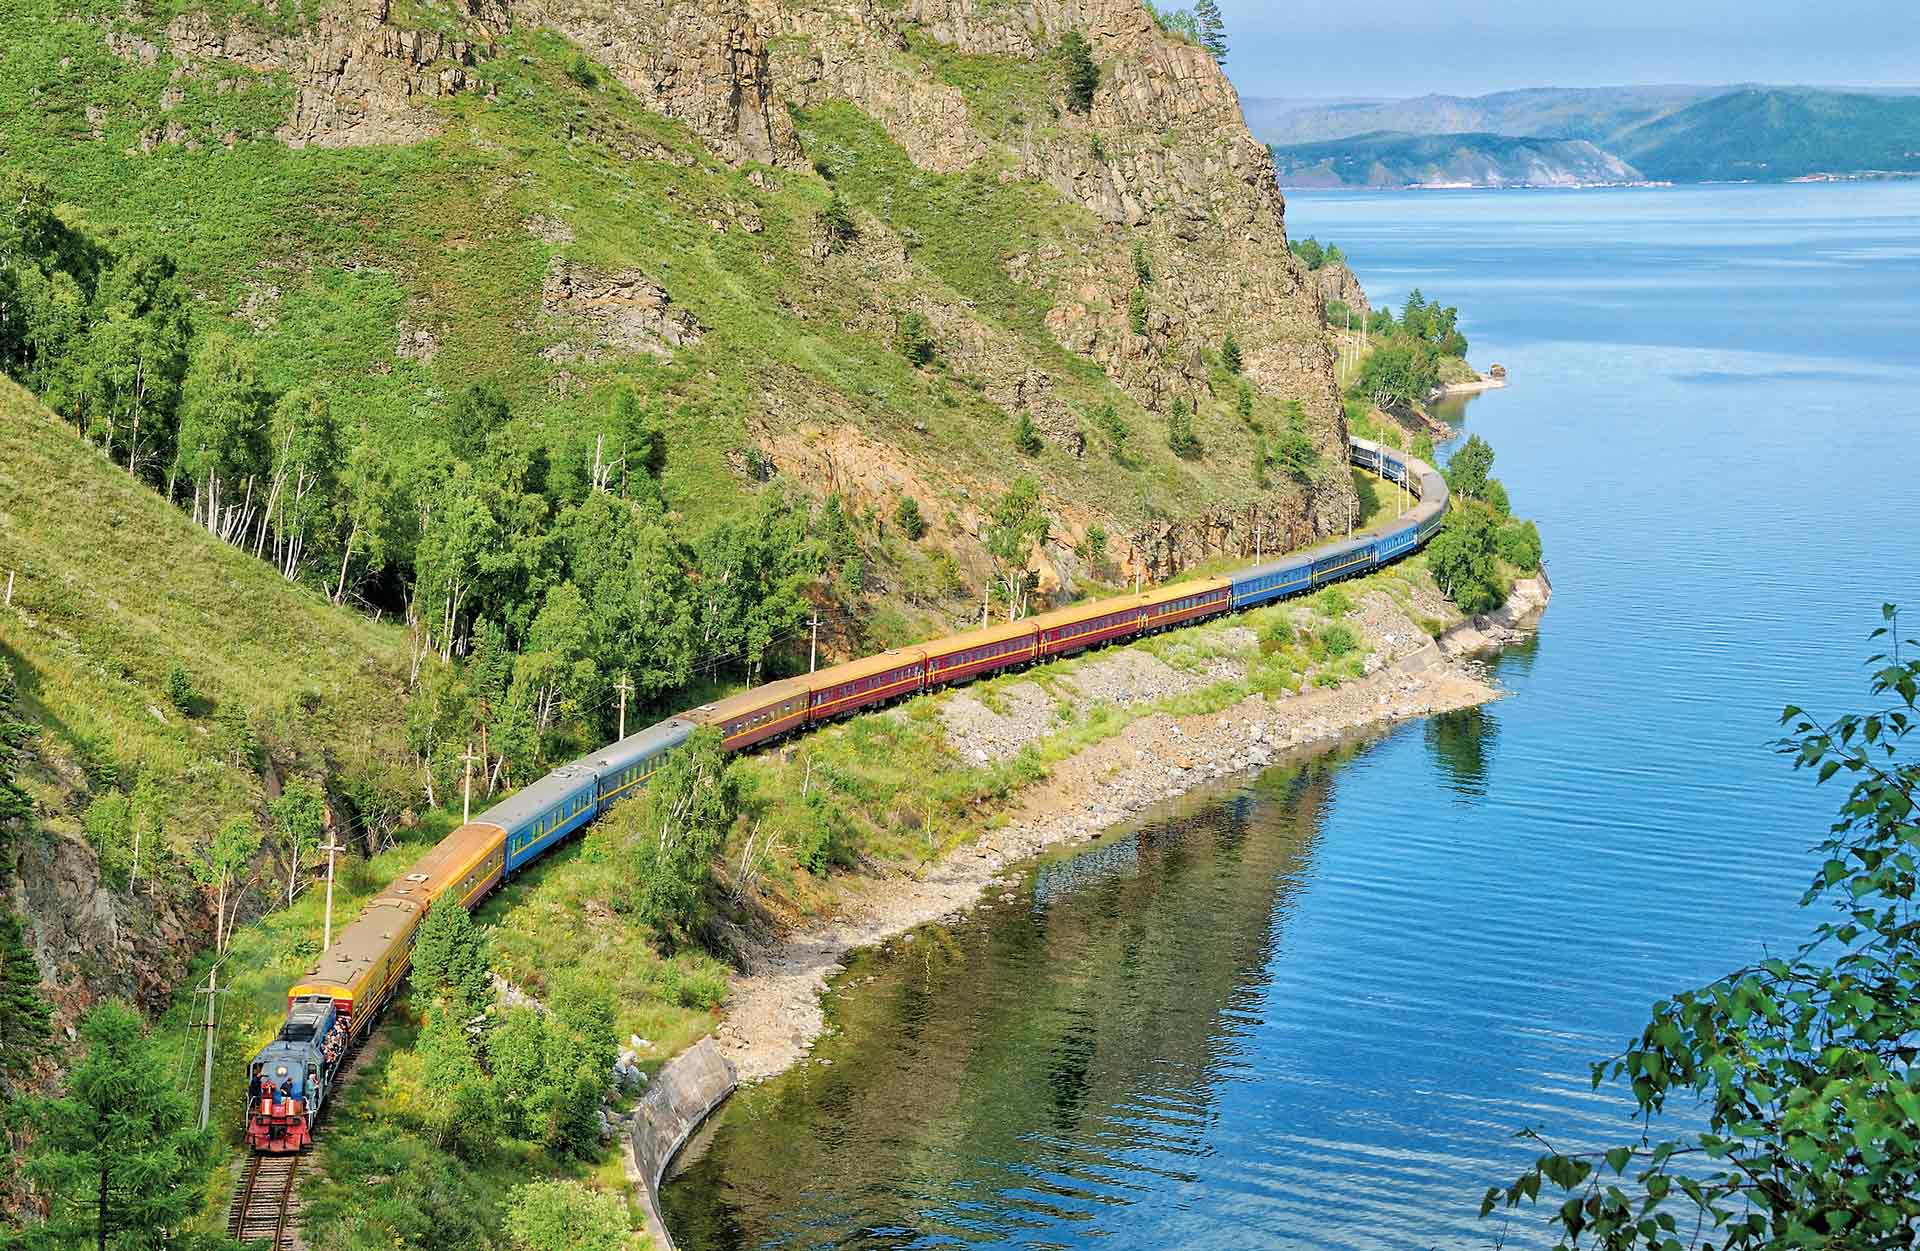 Trans-Siberian Railway, the coast of Lake Baikal.